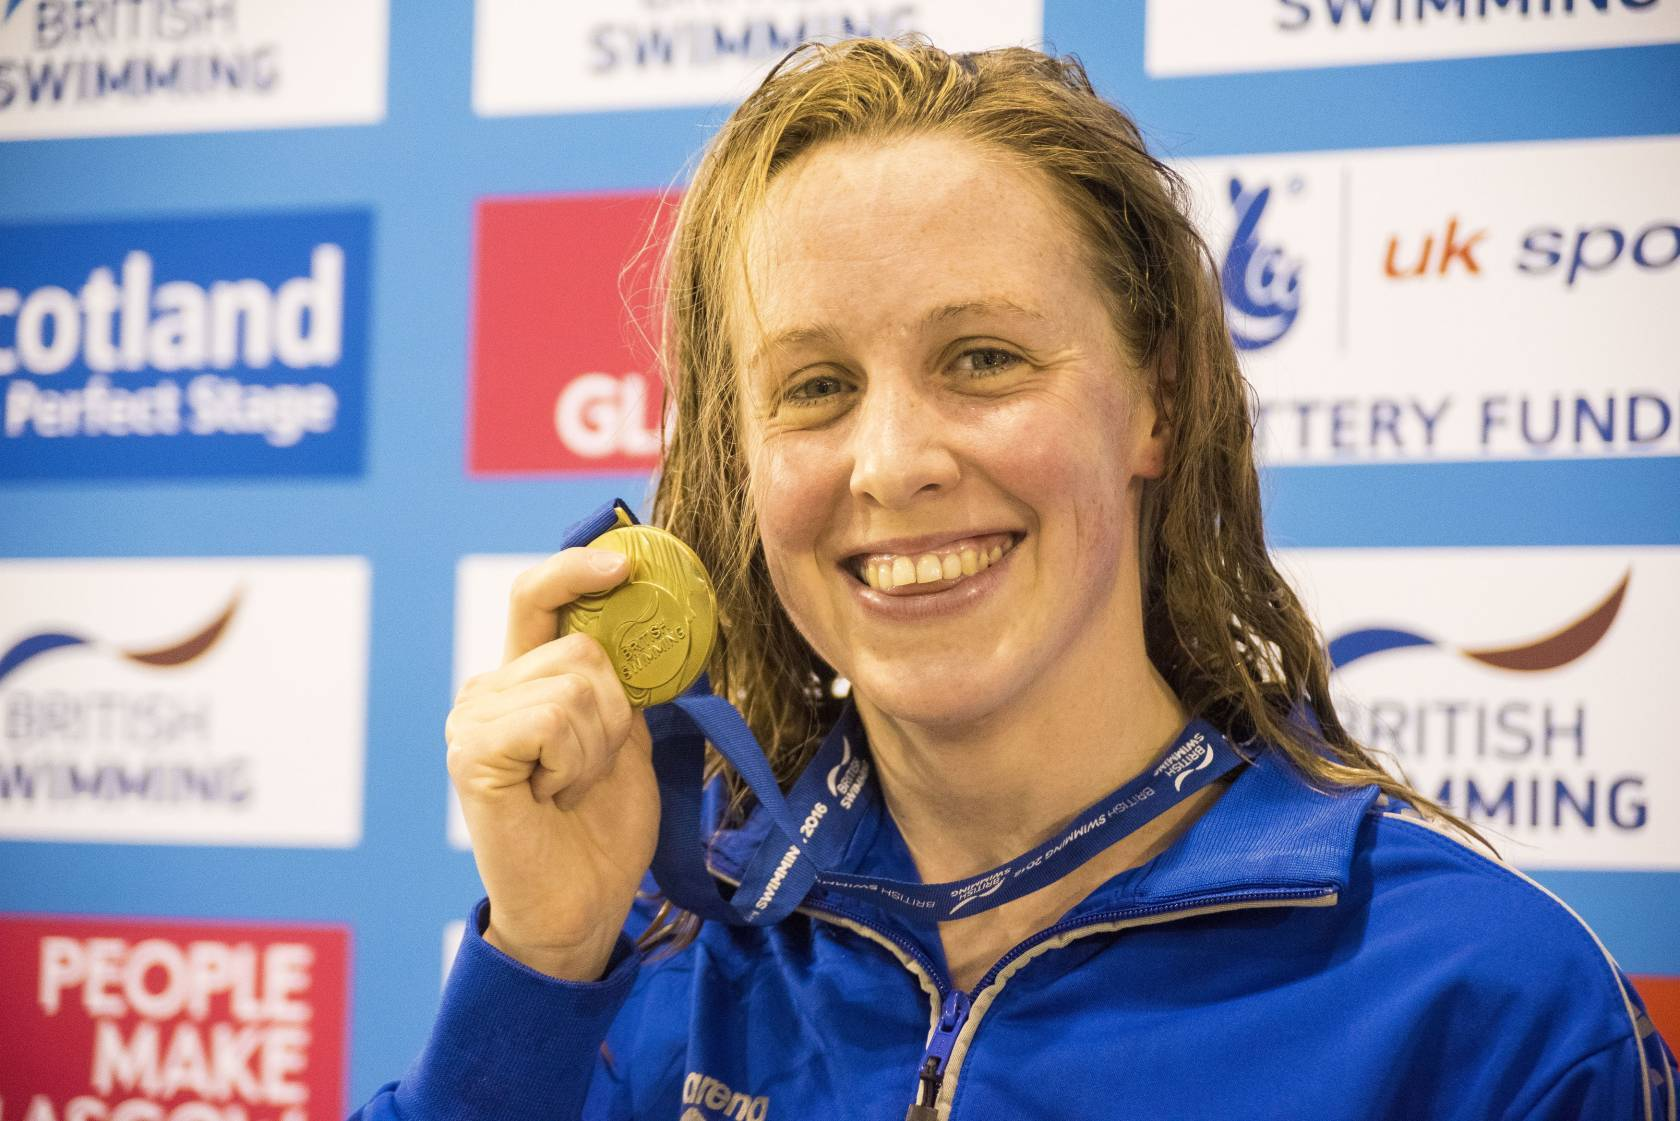 Hannah Miley celebrates with the gold medal after winning the Women's Open 400m IM during day one of the British Swimming Championships at Tollcross International Swimming Centre.